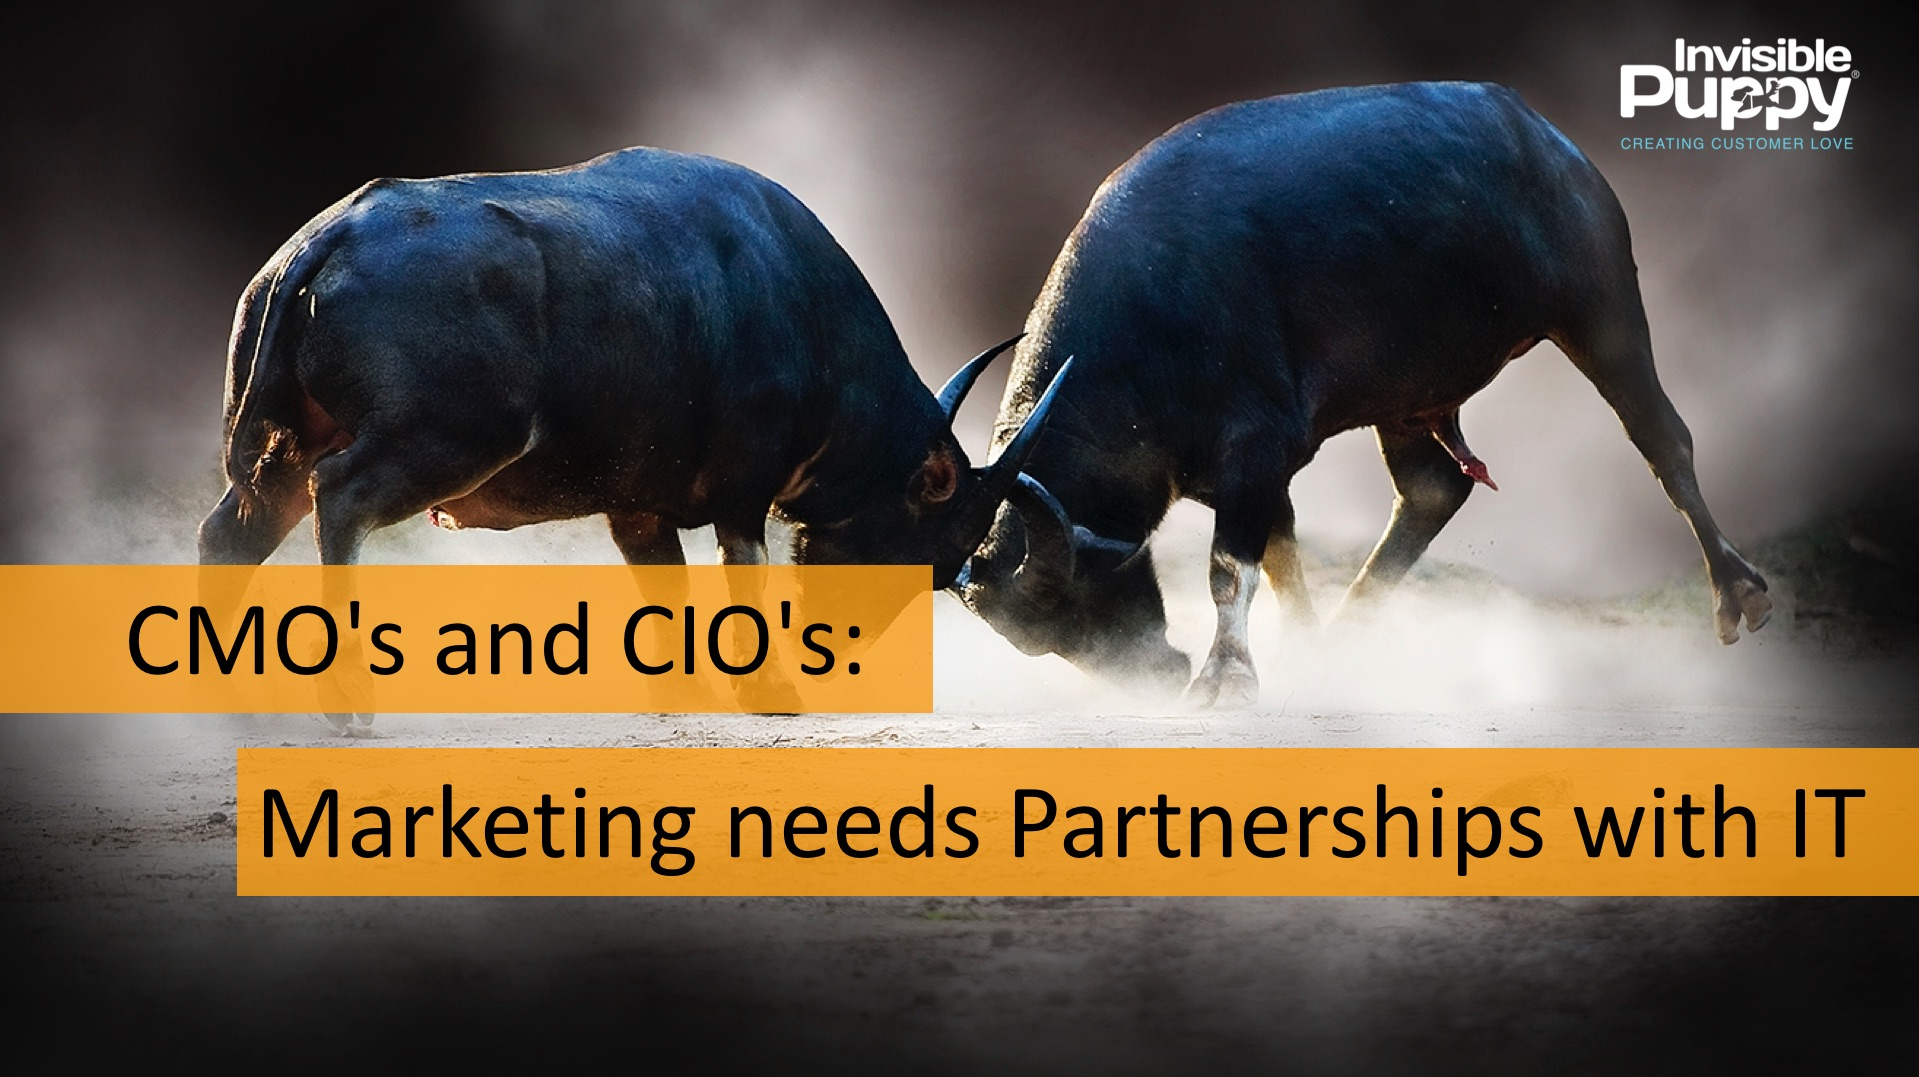 cmo-and-it-partnership-needed